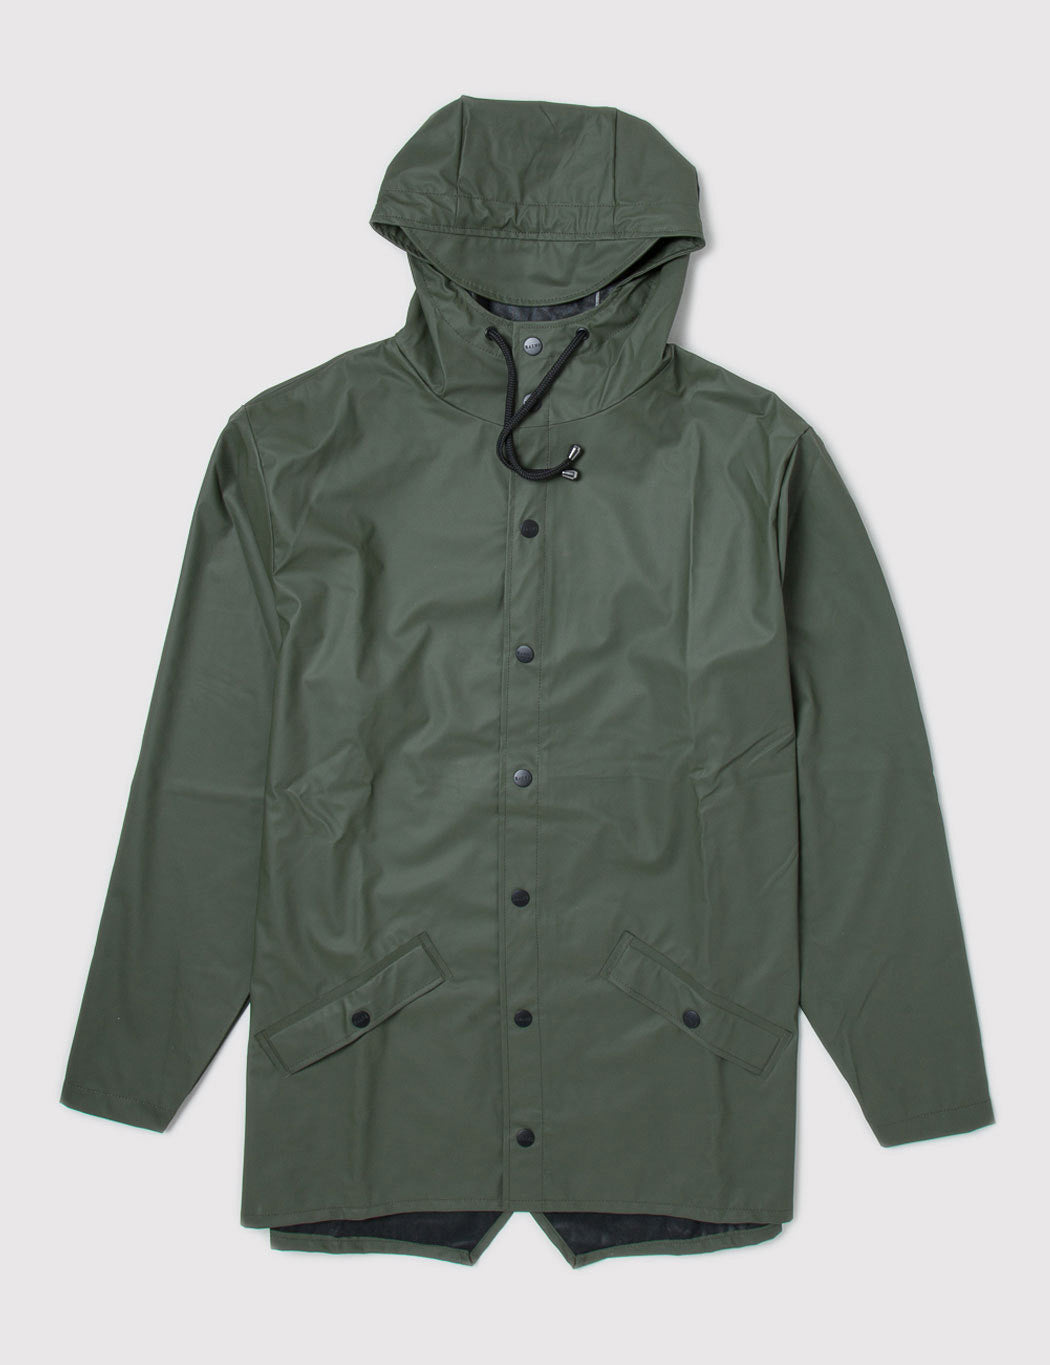 Rains Waterproof Jacket - Olive Green